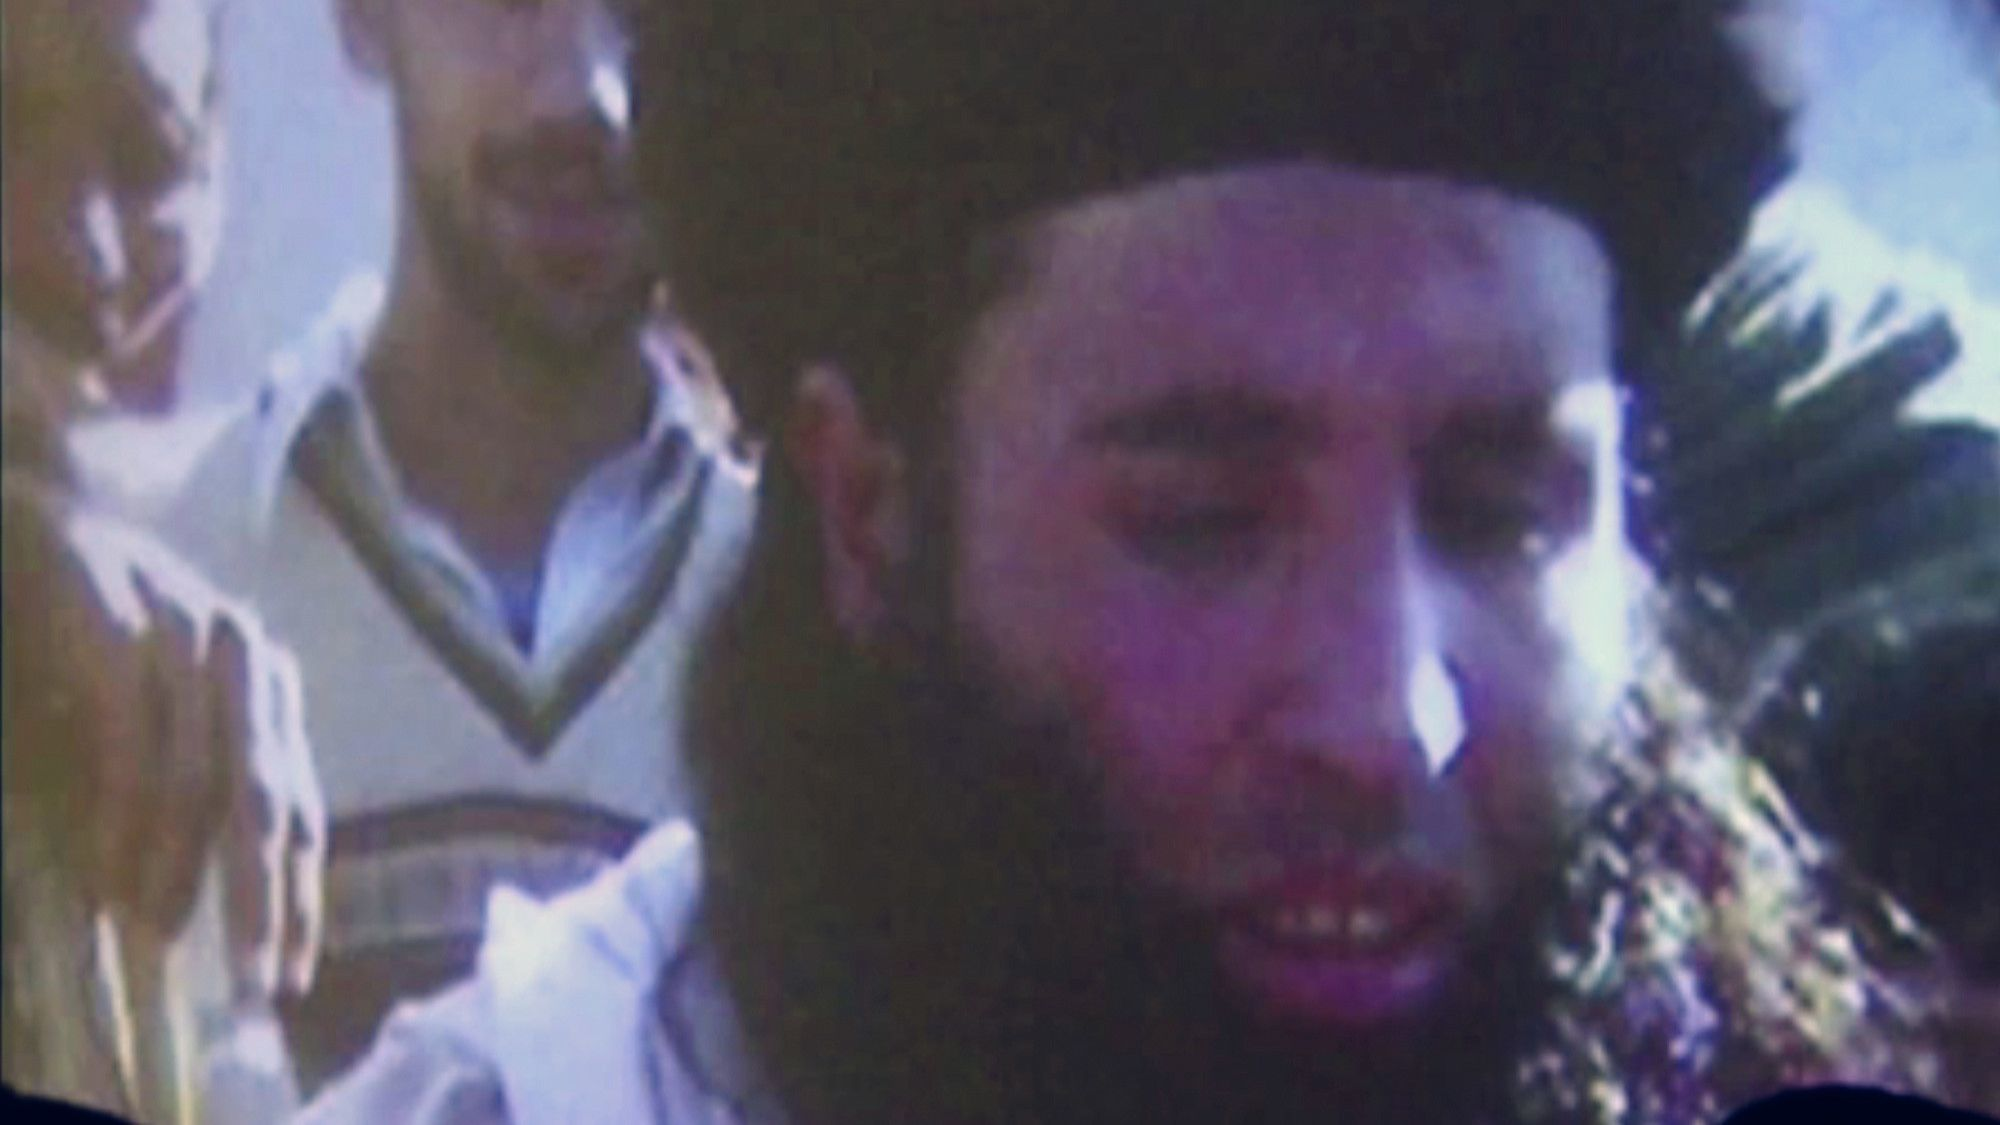 Taliban leader who ordered attack on Malala is killed in U.S. drone strike, officials say